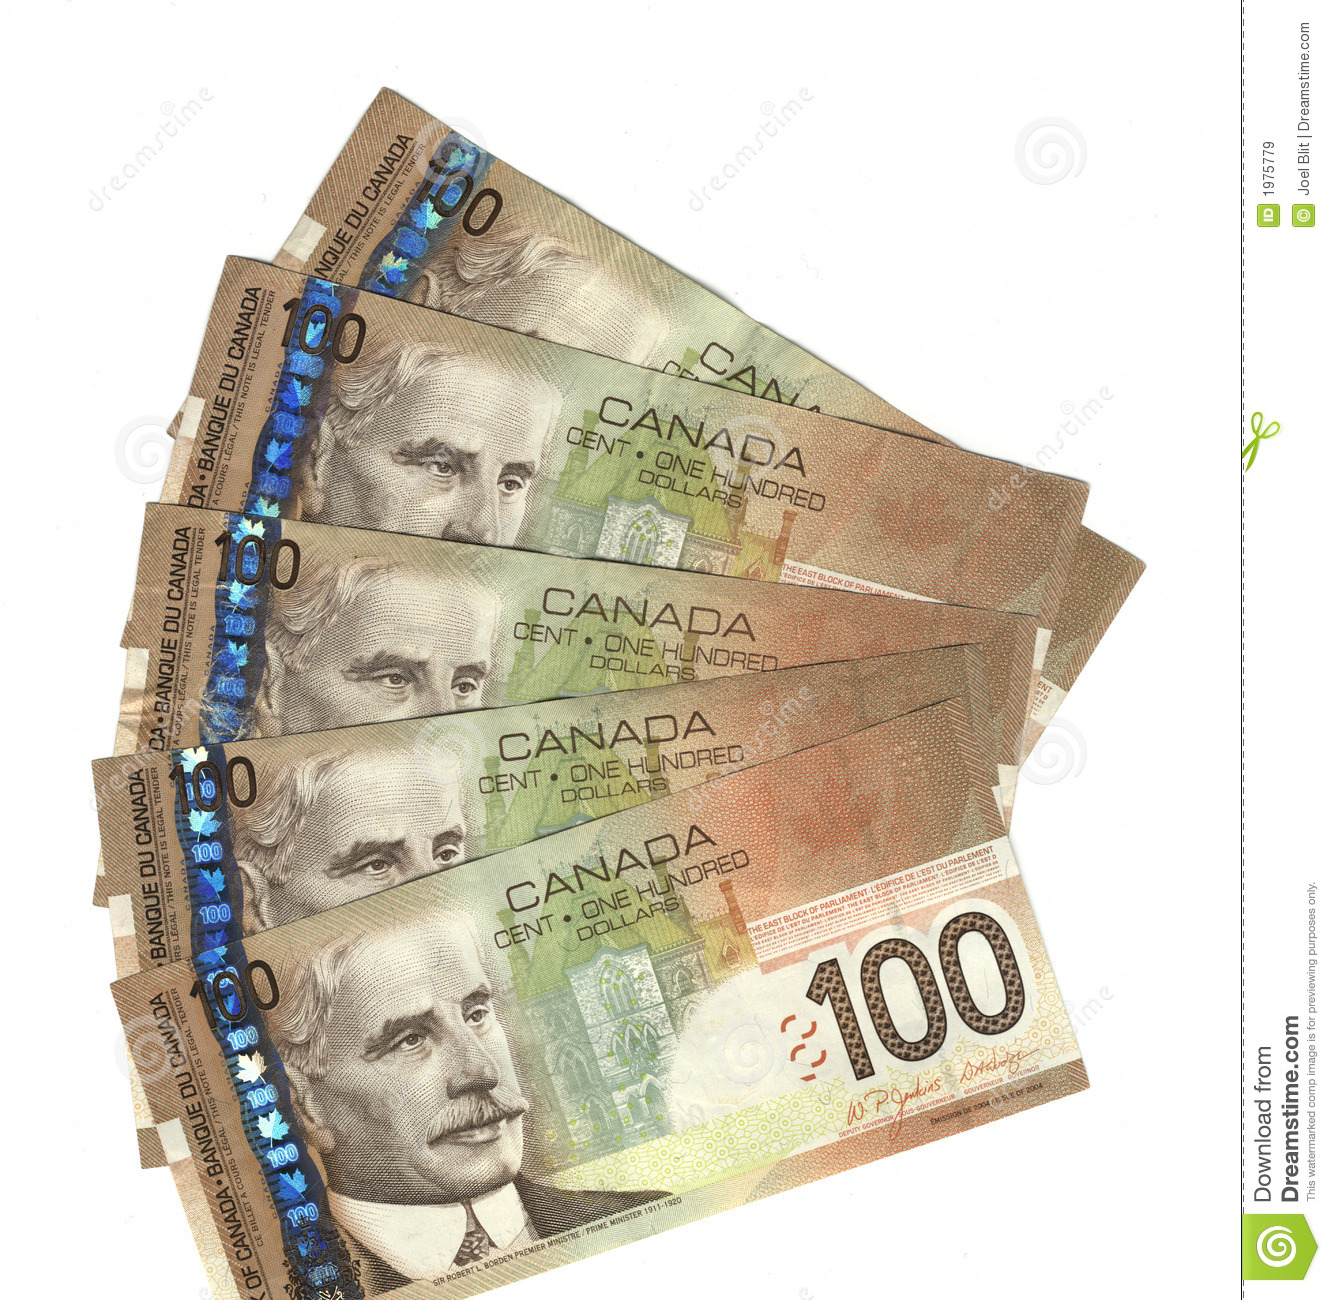 Fanned Out Canadian Hundred Dollar Bills Royalty Free Stock Images.